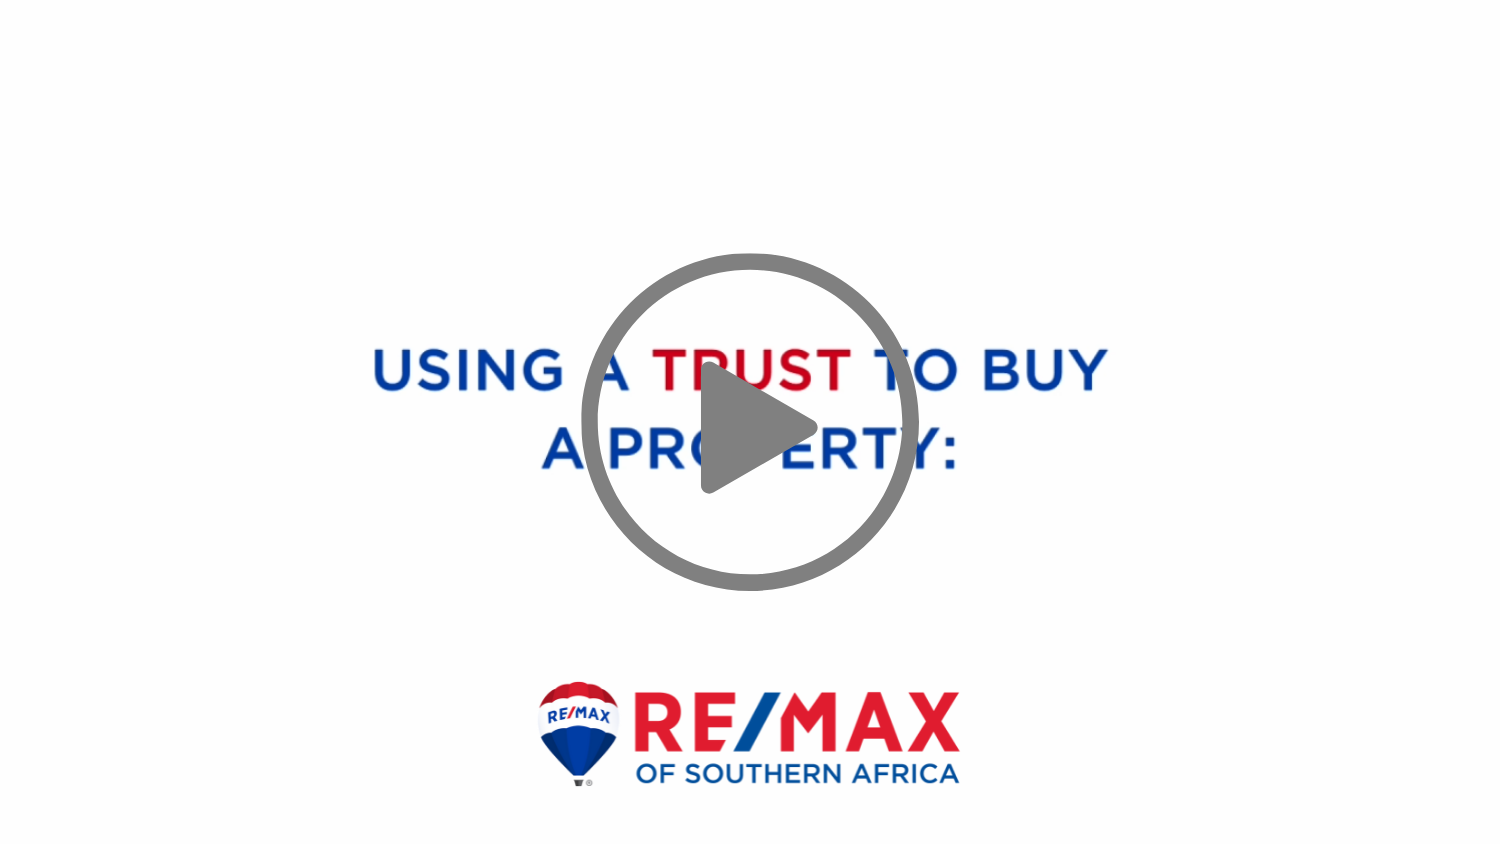 PROS & CONS OF BUYING PROPERTY THROUGH A TRUST